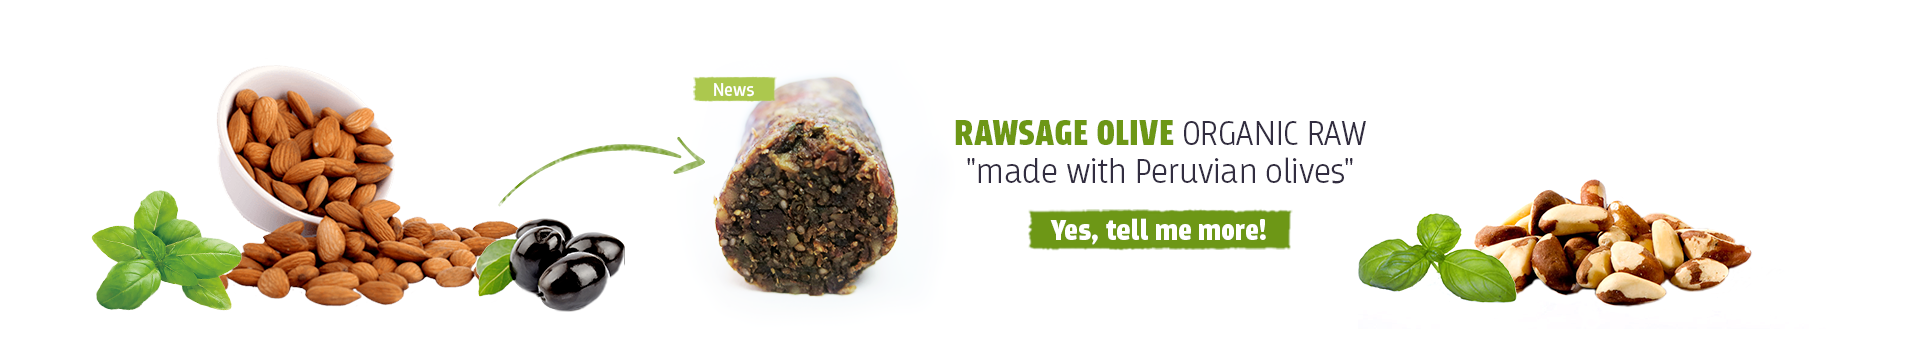 New rawsage olive is here!